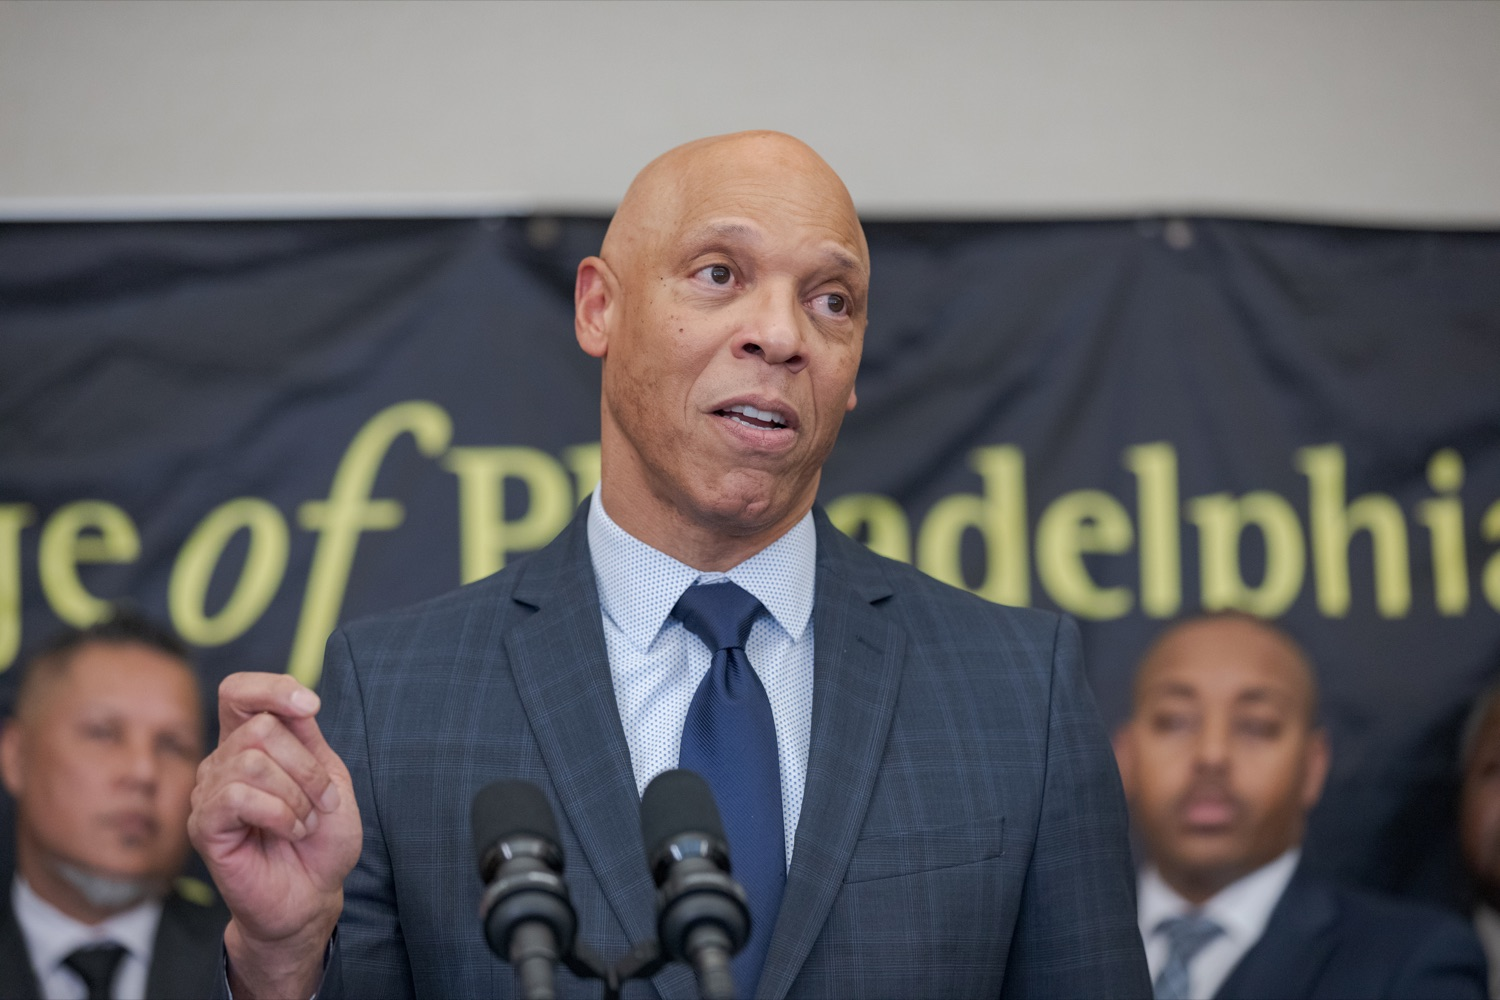 "<a href=""http://filesource.abacast.com/commonwealthofpa/photo/17592_EDU_Aspiring_NK_008.JPG"" target=""_blank"">⇣ Download Photo<br></a>Dr. William Hite, the superintendent of the School District of Philadelphia, speaks during a press conference, announcing the School District of Philadelphia's new pilot program, Aspiring to Educate, that aims to cultivate and diversify the citys educator pool, inside Community College of Philadelphia's Center for Business and Industry on Wednesday, November 20, 2019."